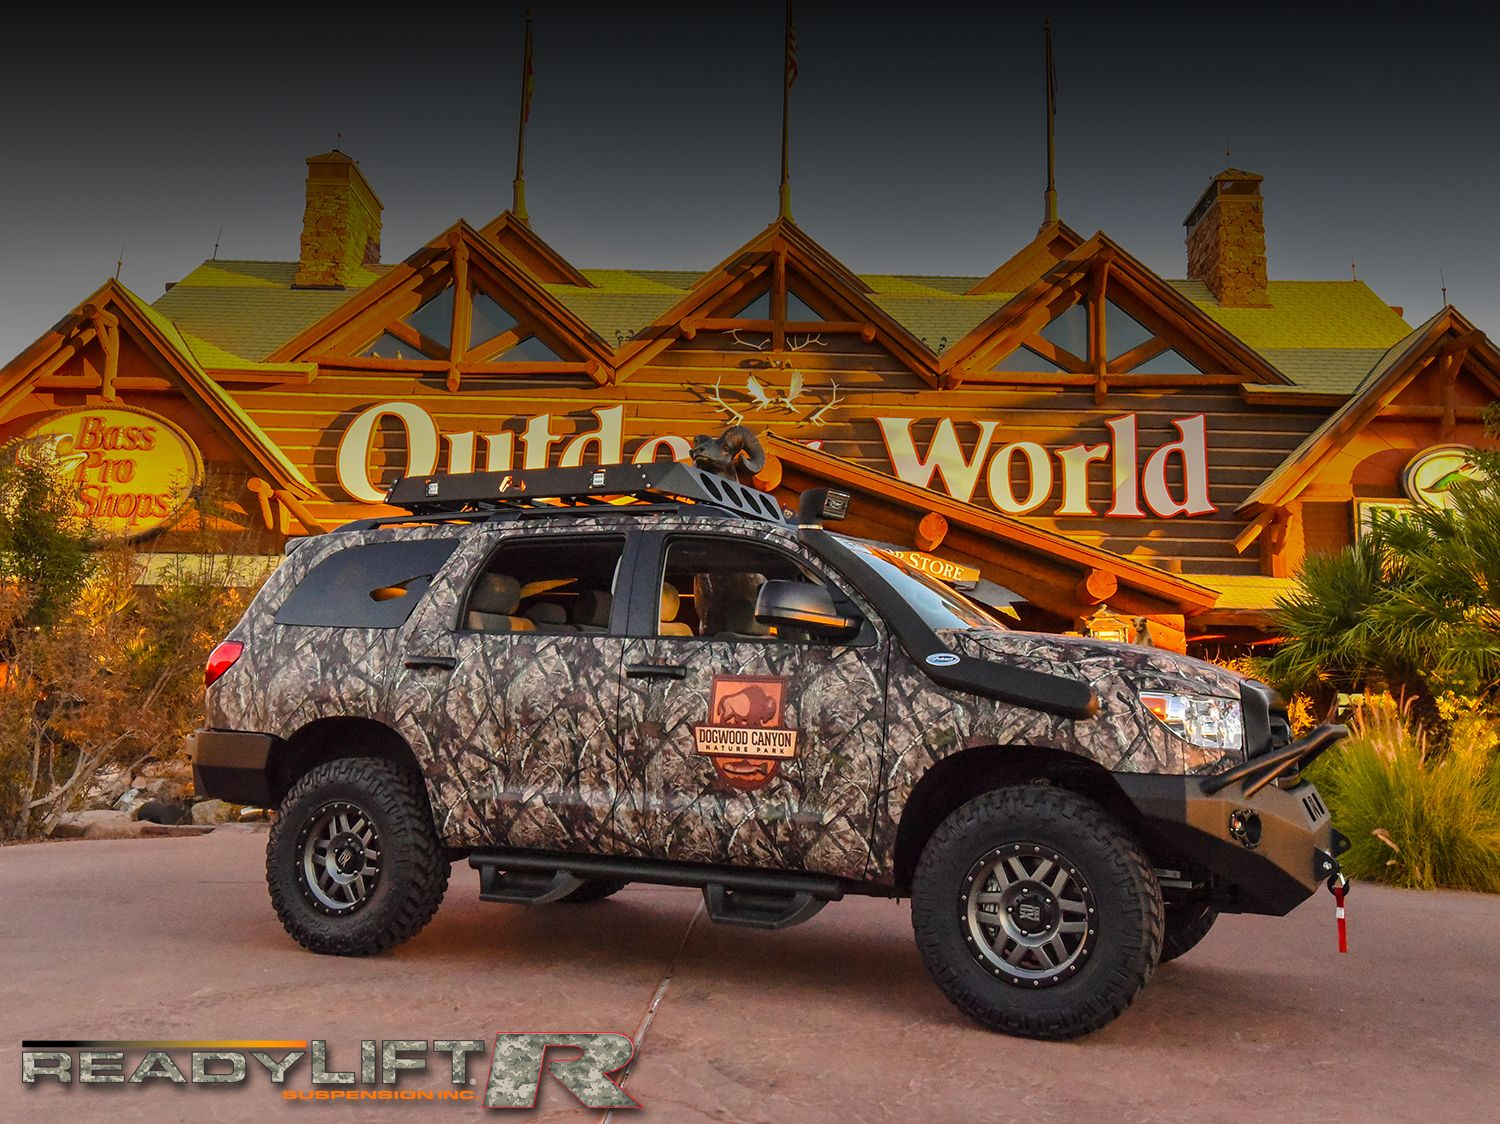 Awesome Toyota Sequoia Built By Devine1 Customs Featuring Our Land Cruiser 200 Lift Kit Readylift 3 Sst For Bass Pro Shops